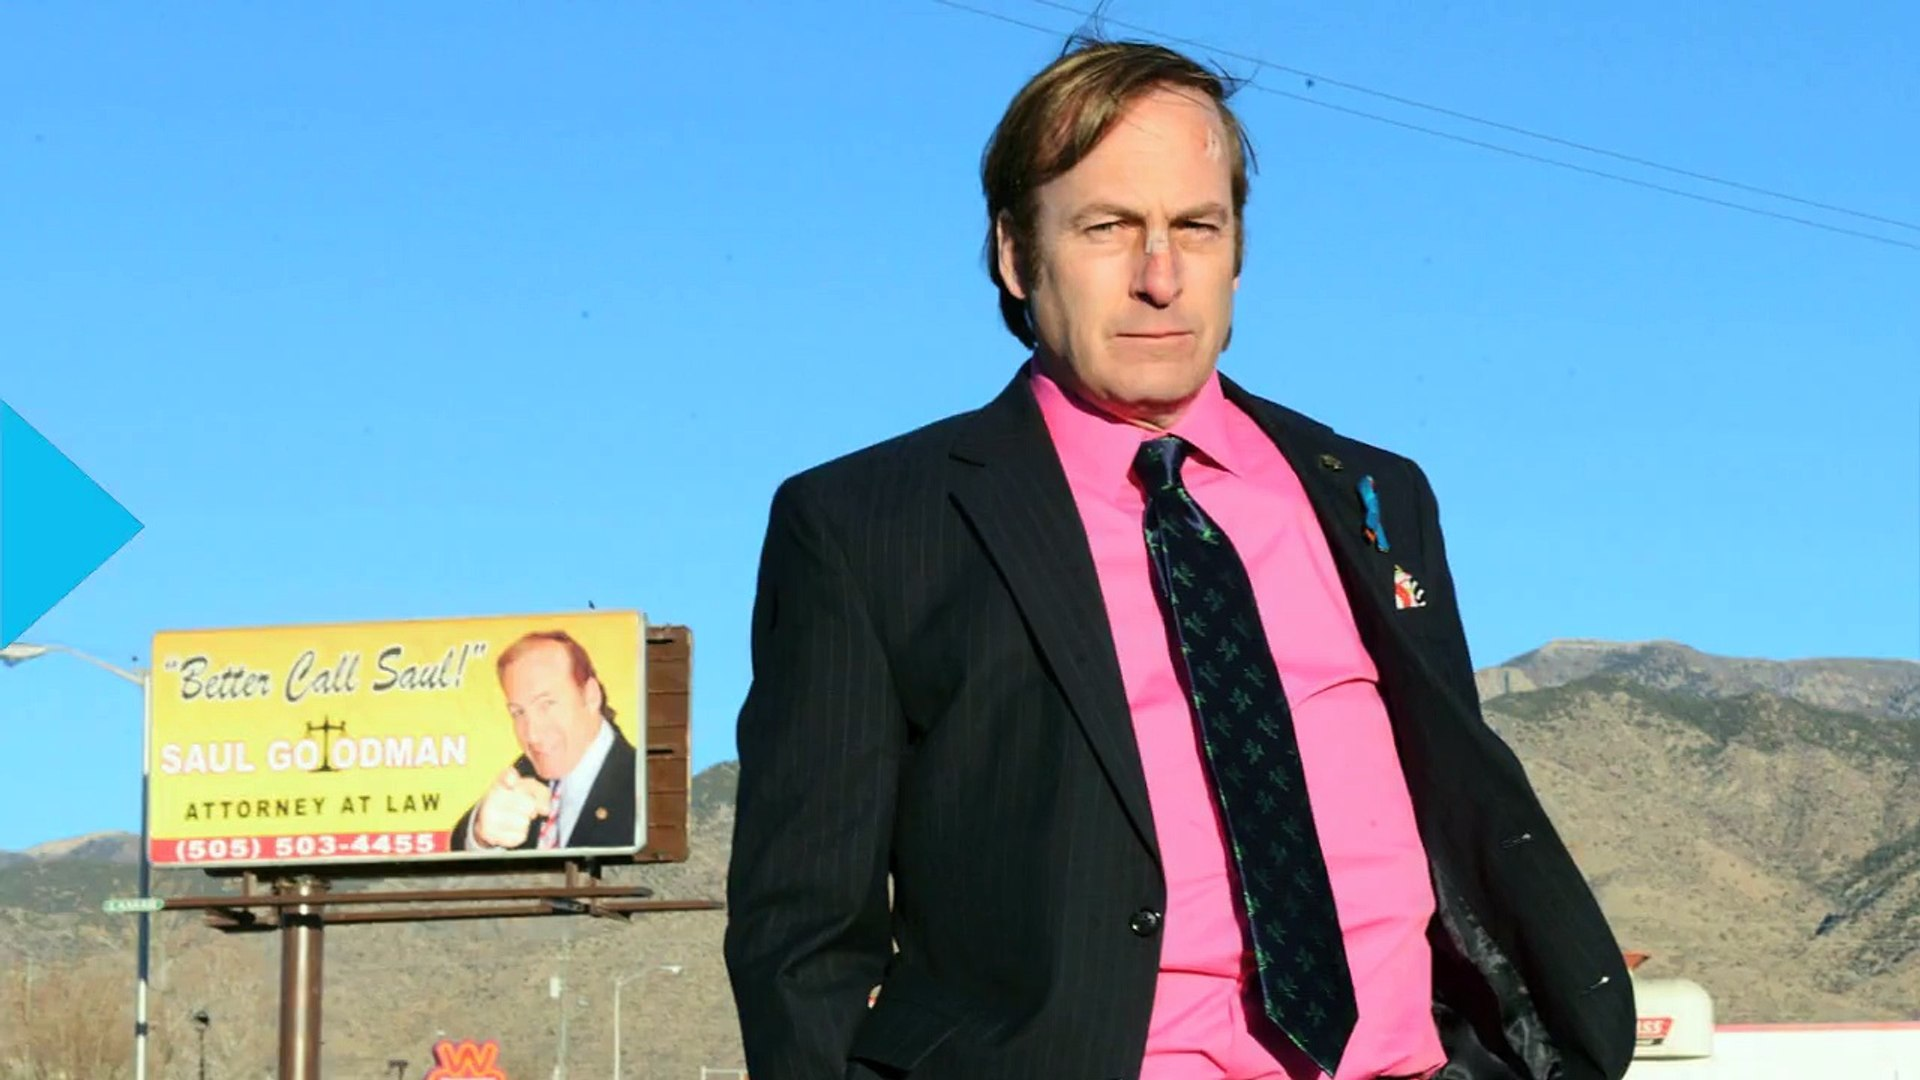 Better Call Saul Episode 7 Jimmy Does The Right Thing In Air Quotes